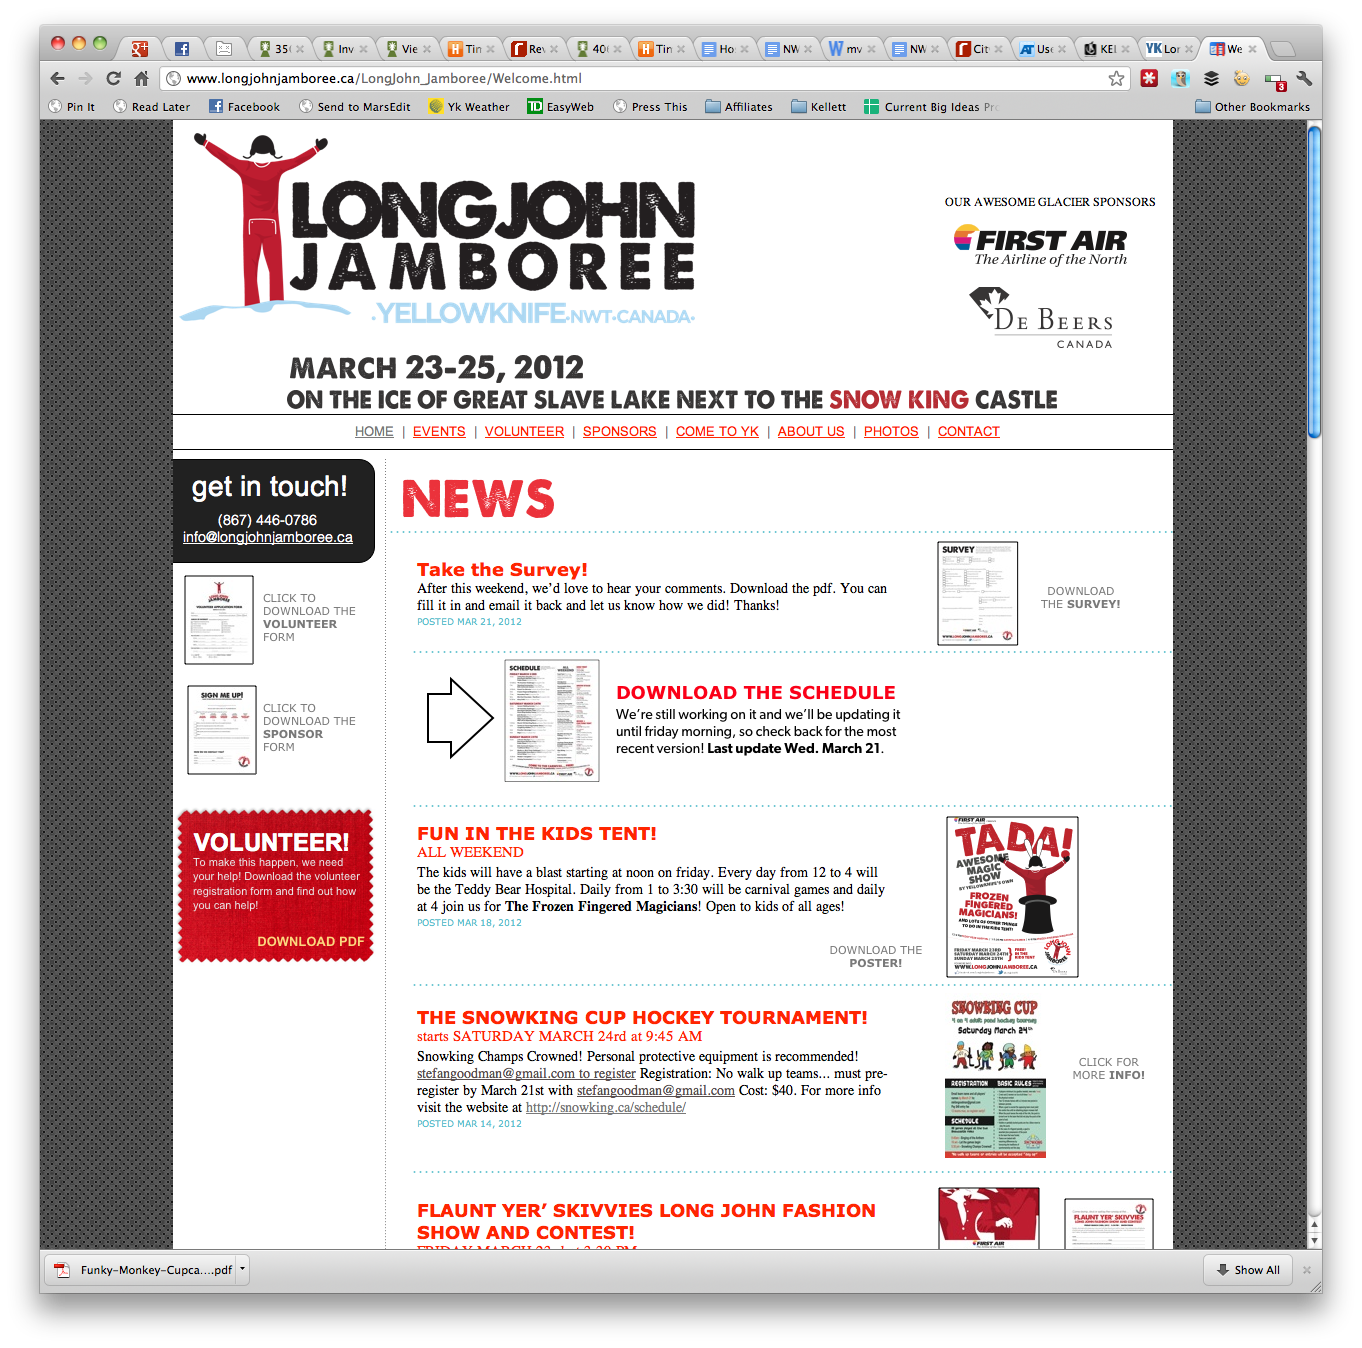 Long John Jamboree Website